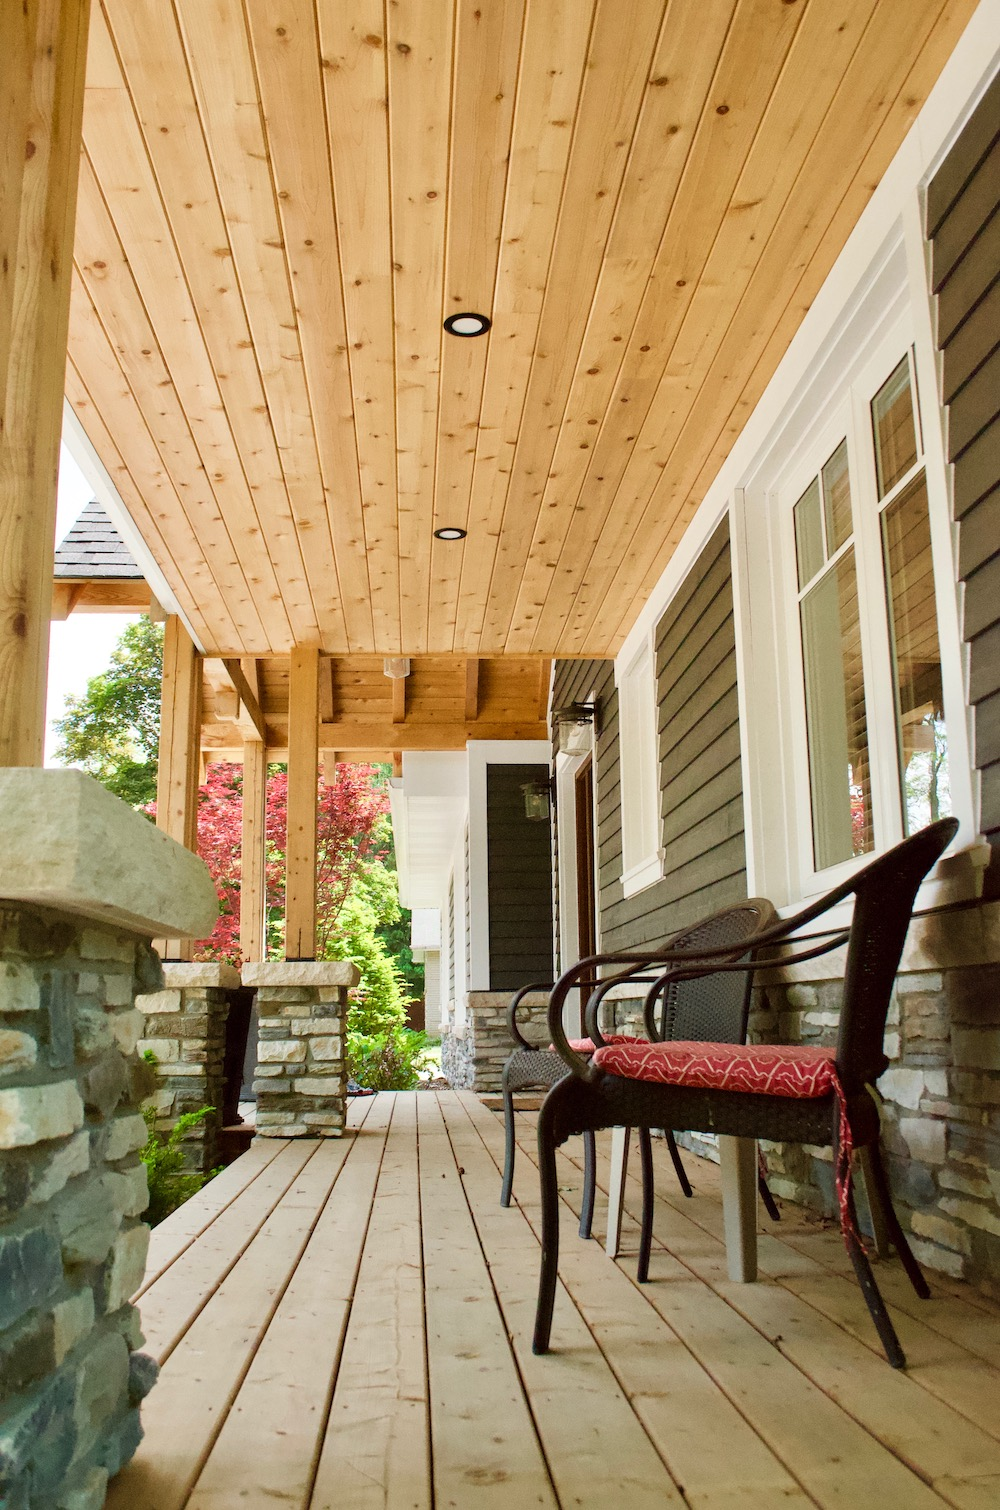 verandah cedar tongue and groove blue cape cod siding stone skirt.jpeg